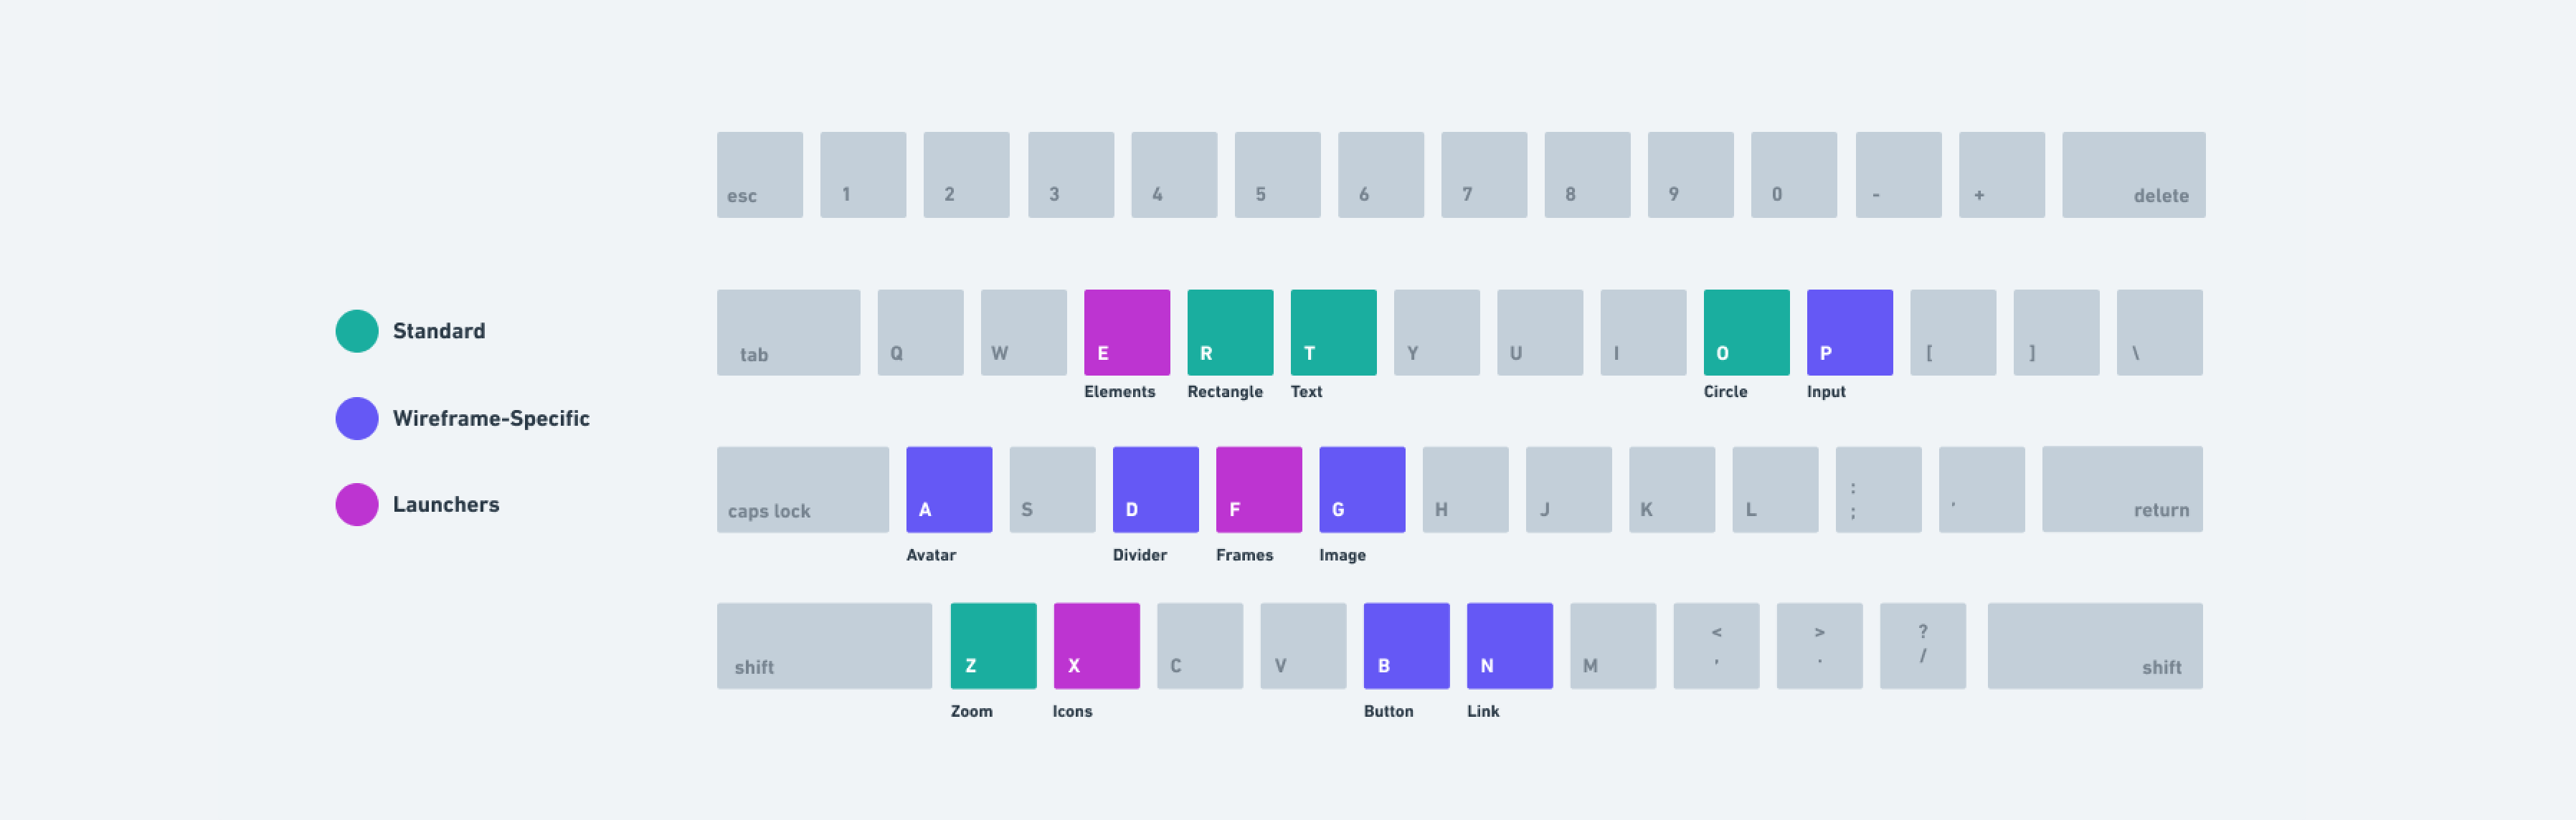 Overview of Wireframe keyboard shortcuts color-coded by category